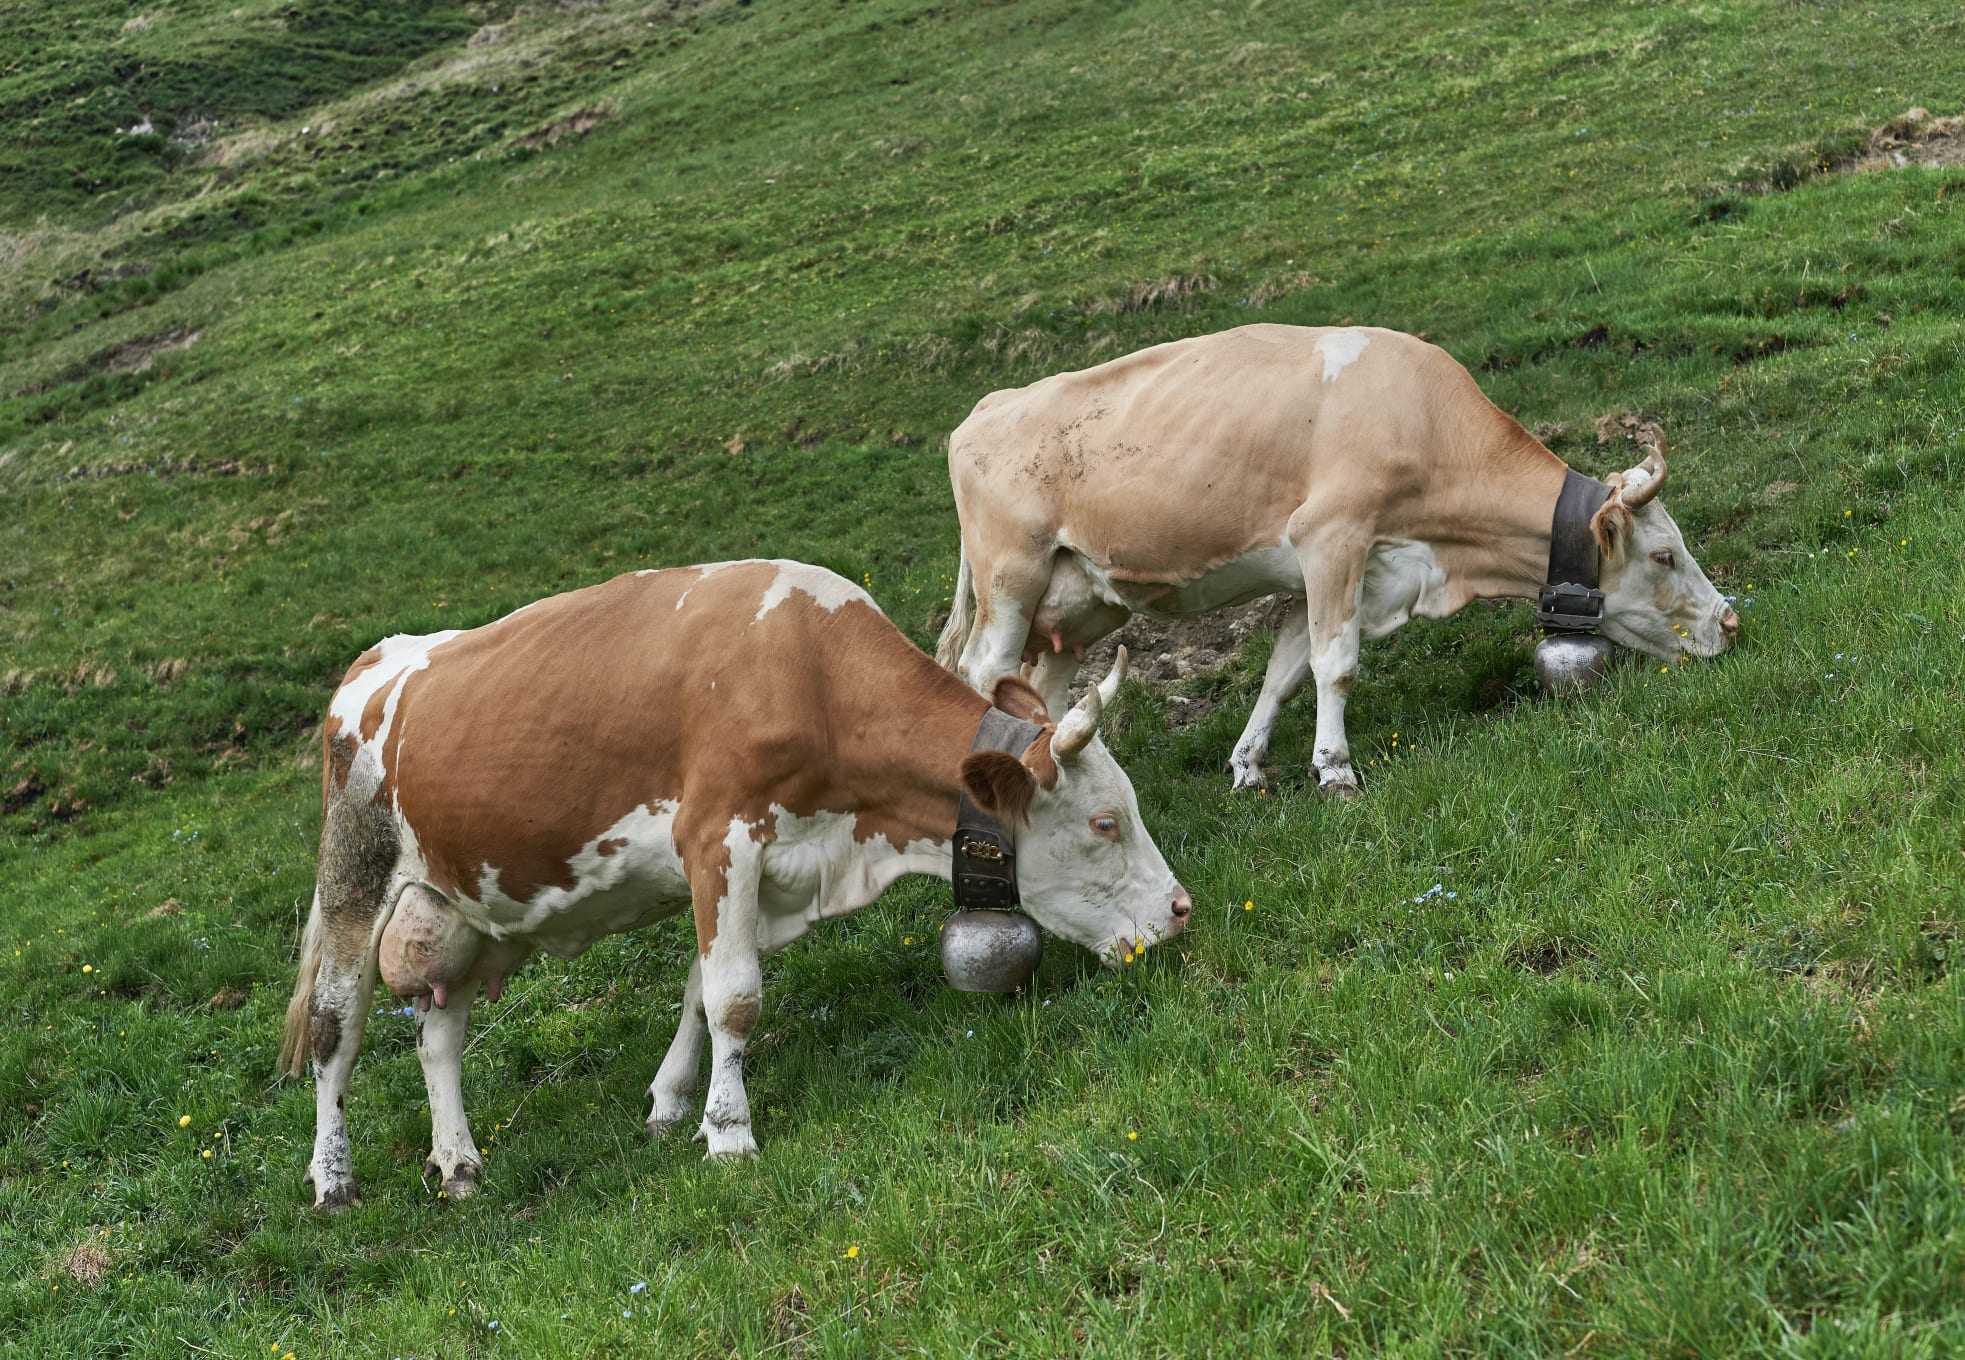 Cows grazing. In a turn away from cow milk, plant-based oat milk brand Oatly looks promising.